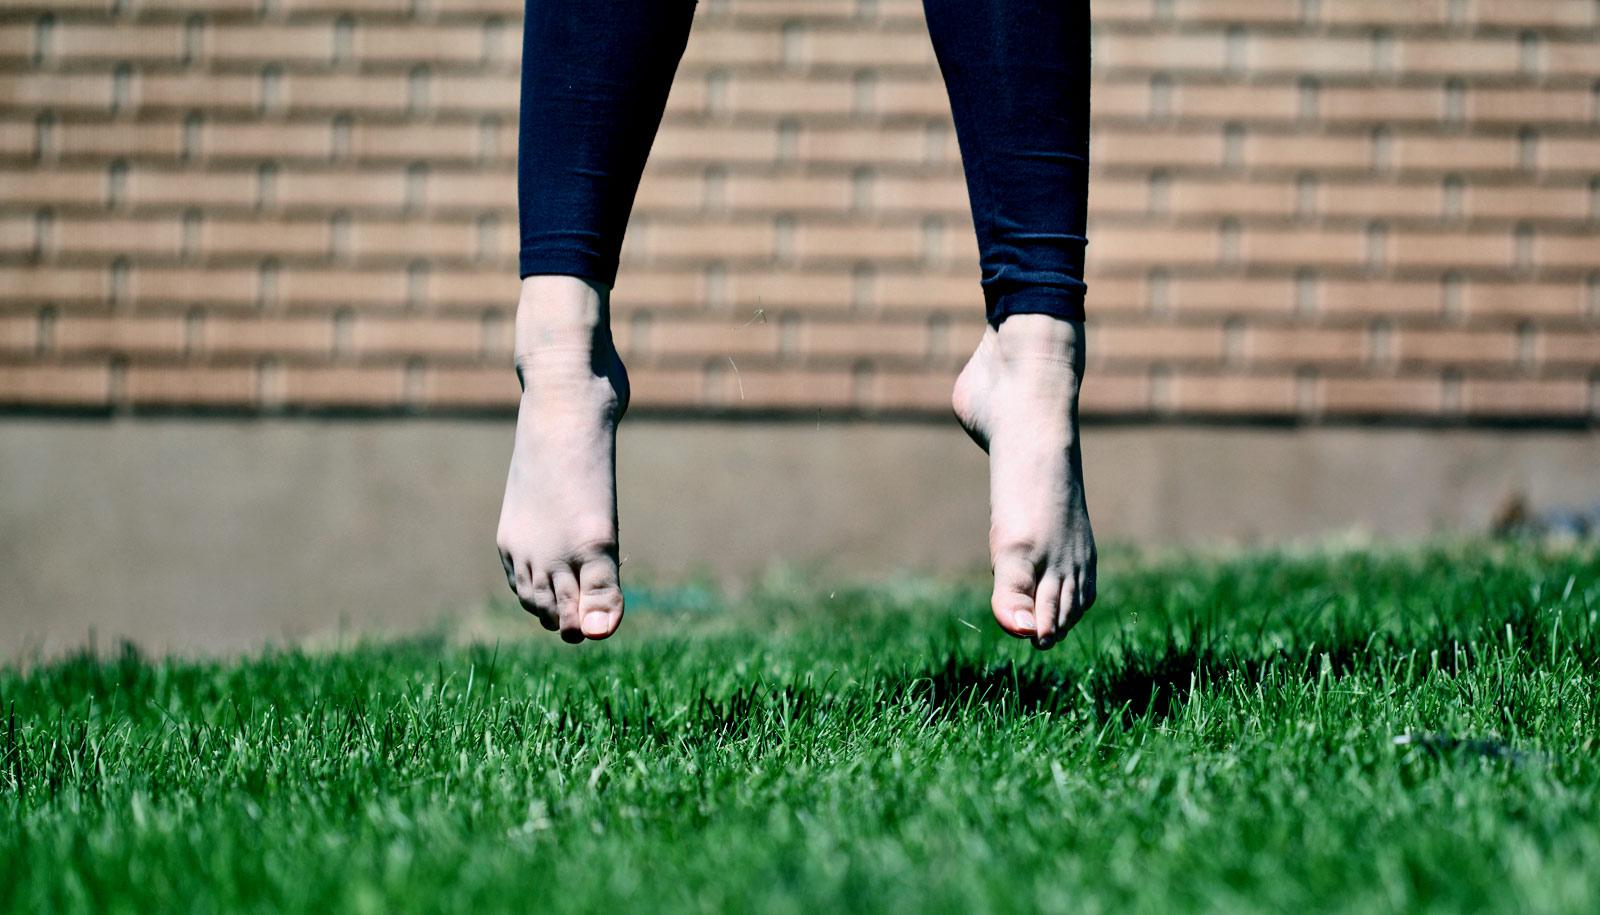 feet of jumping person on grass - human evolution concept